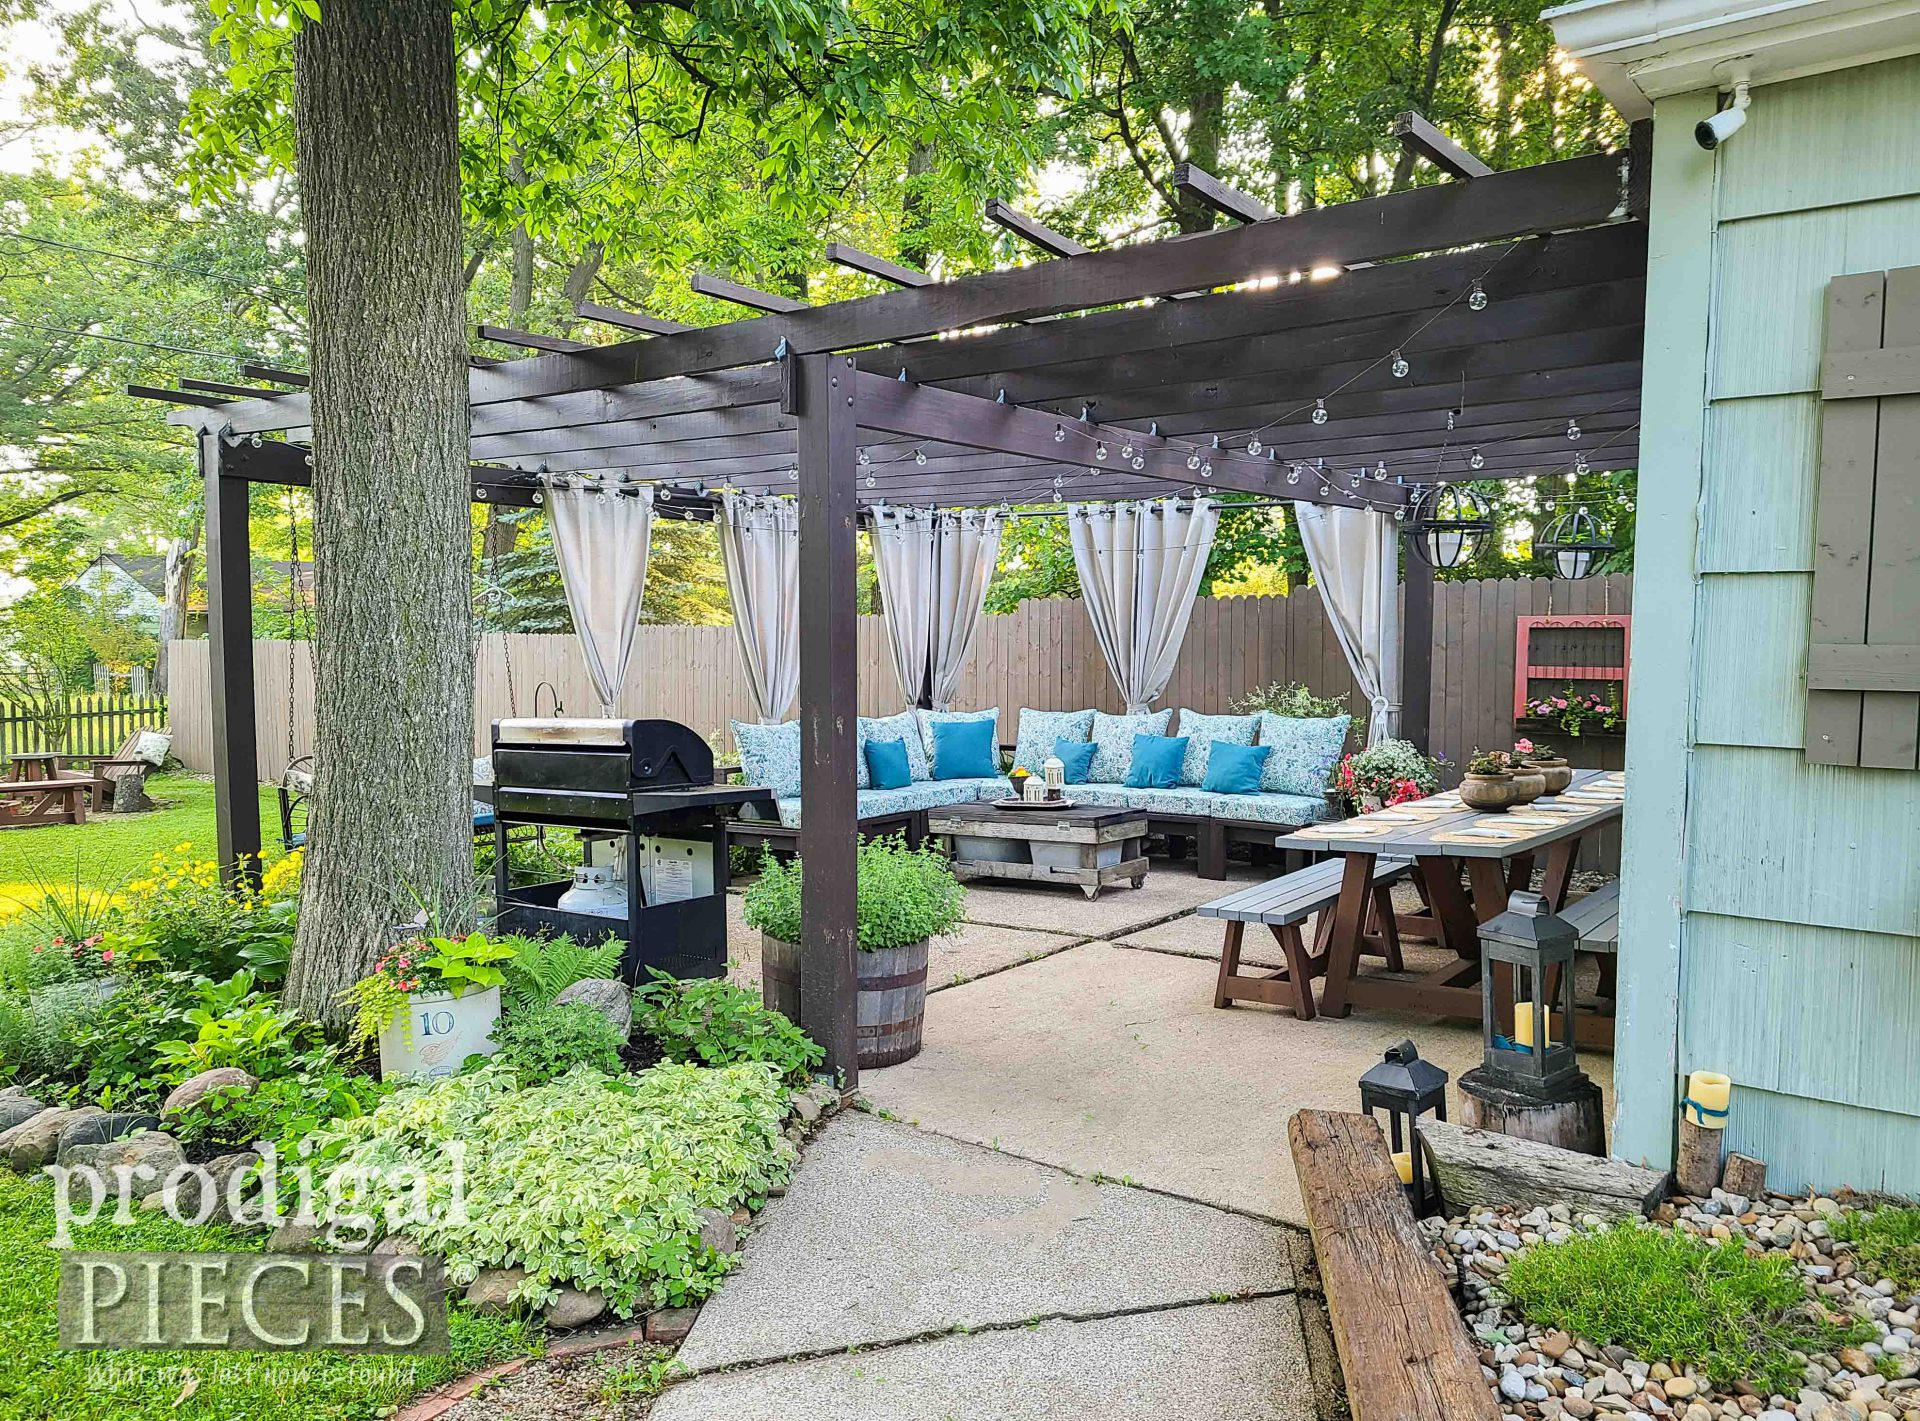 Patio with Pergola Makeover After by Larissa of Prodigal Pieces | prodigalpieces.com #prodigalpieces #patio #pergola #outdoor